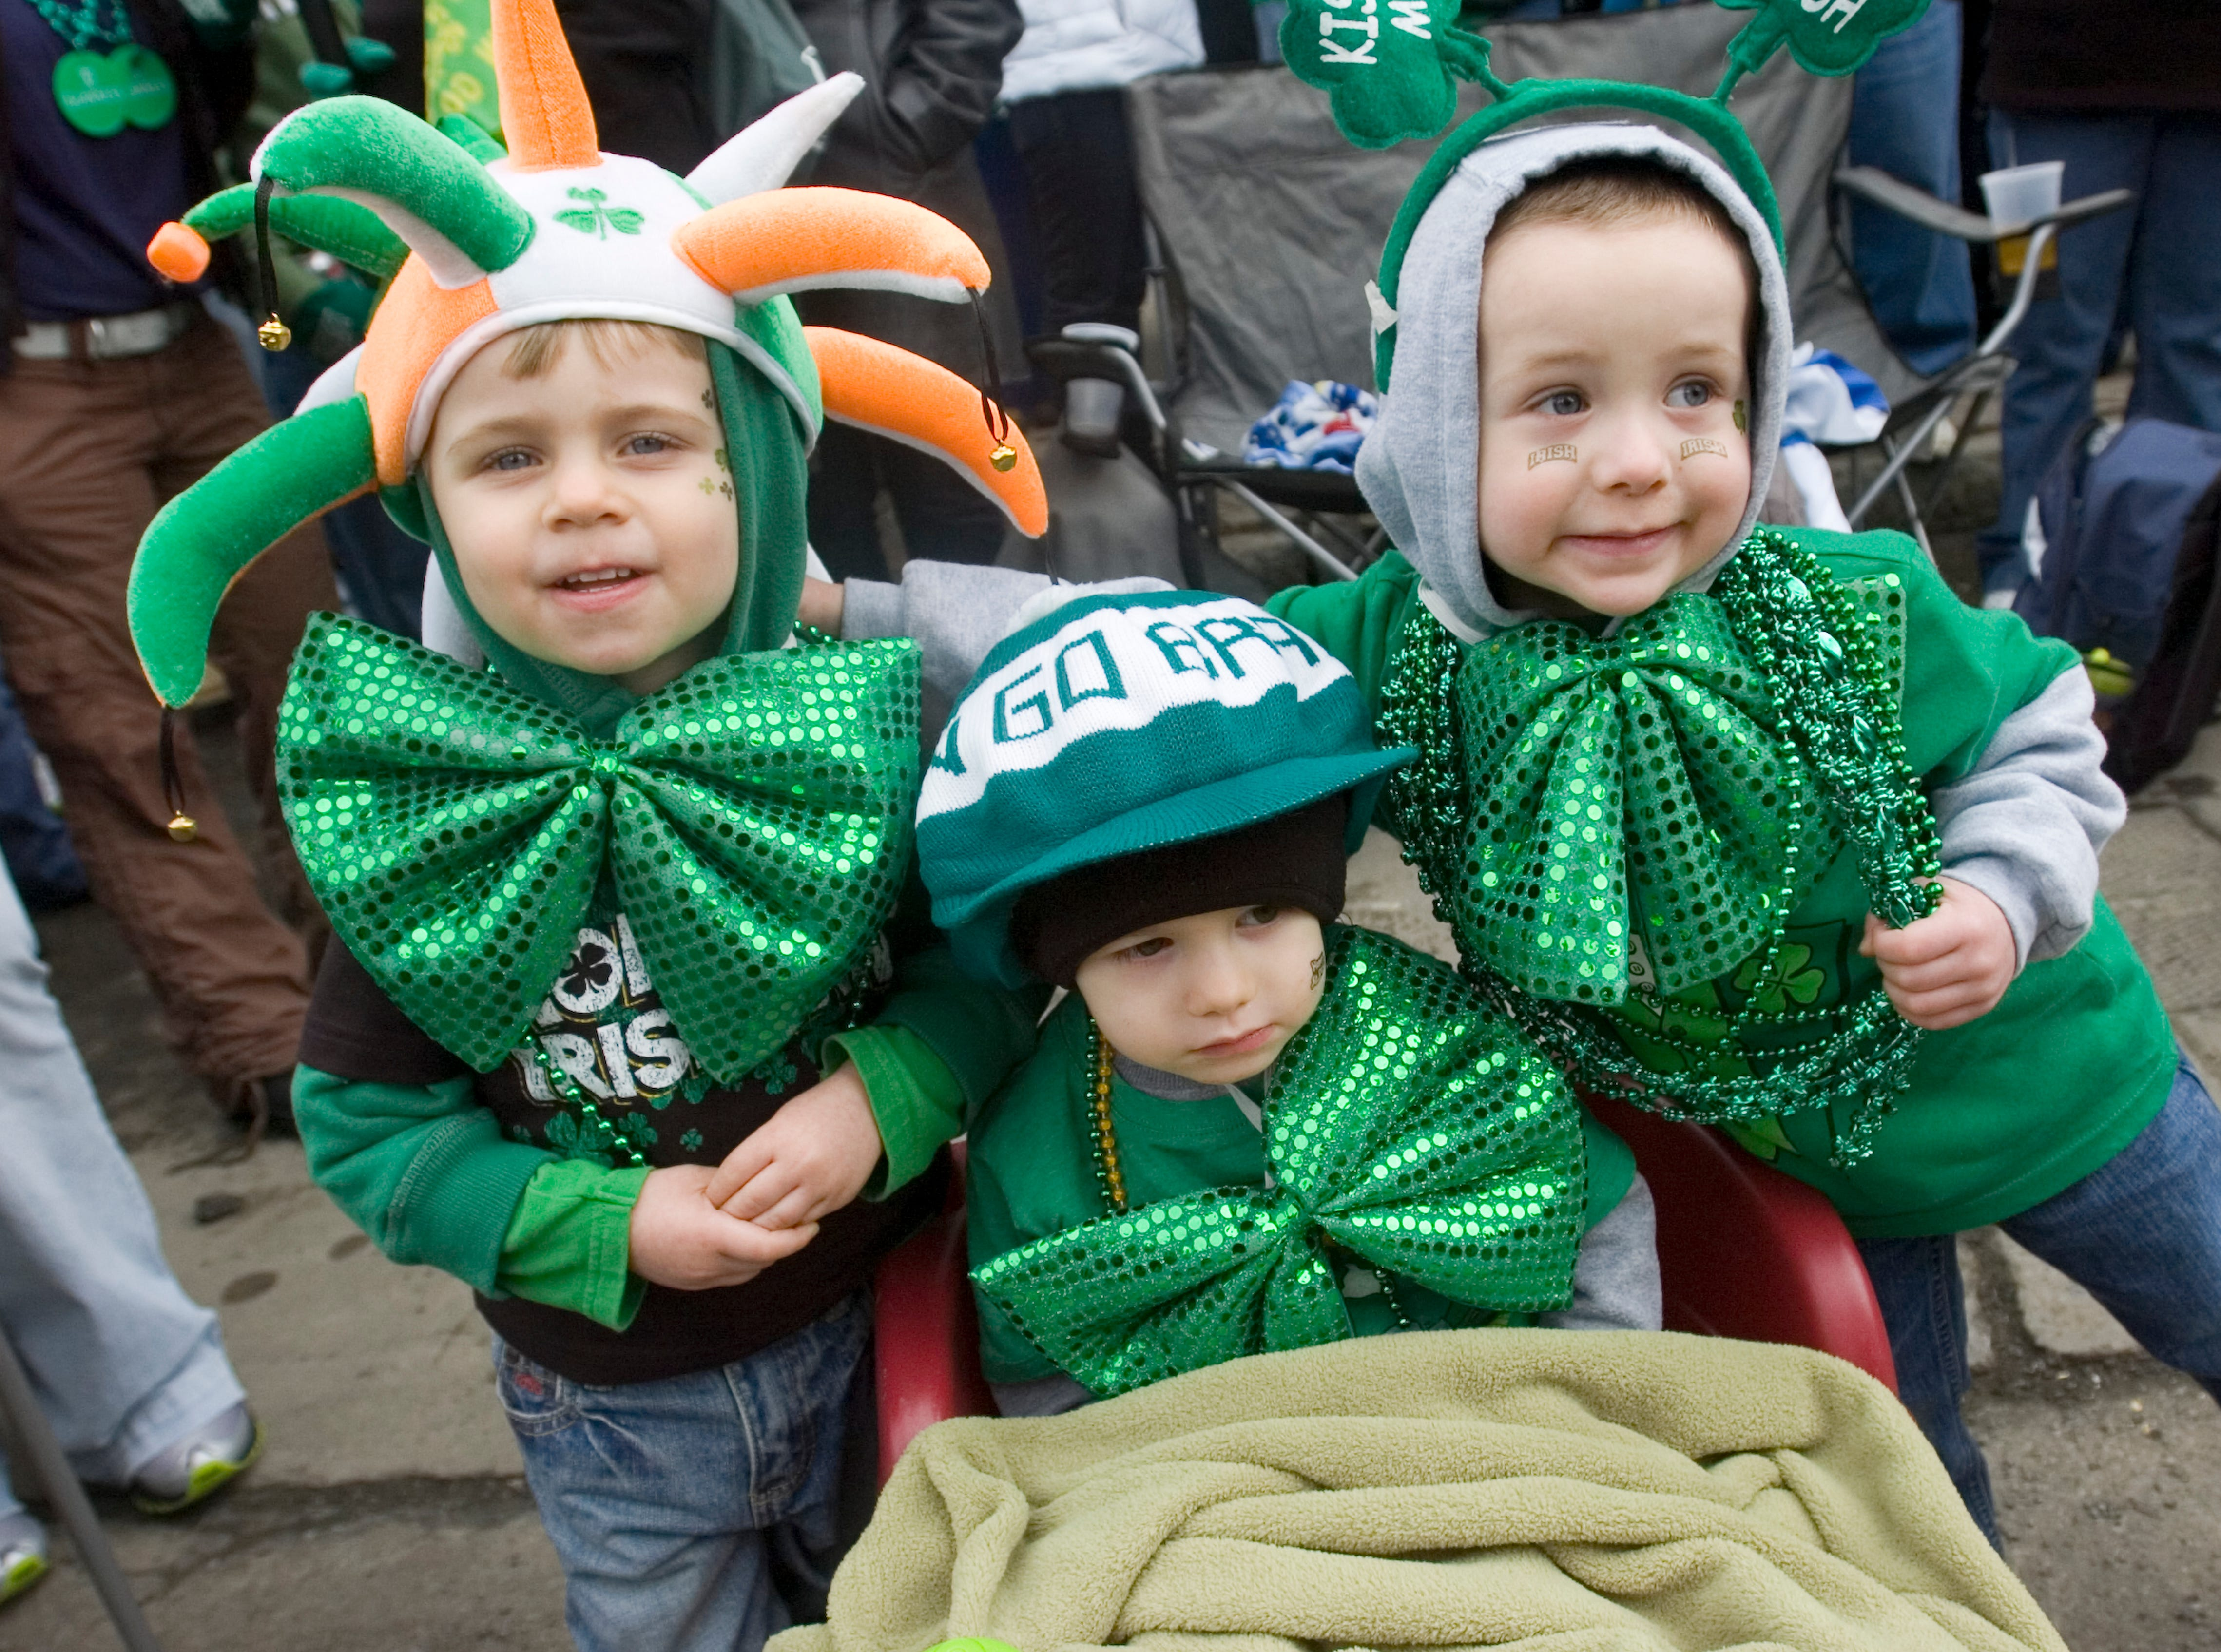 2011: Cousins, from left, Caden Hogeboom, Carson Sedlak, and Kameron Kelly, all three-years-old from Endicott, attend the 44th annual St. Patrick's Day parade is held in downtown Binghamton on Saturday.